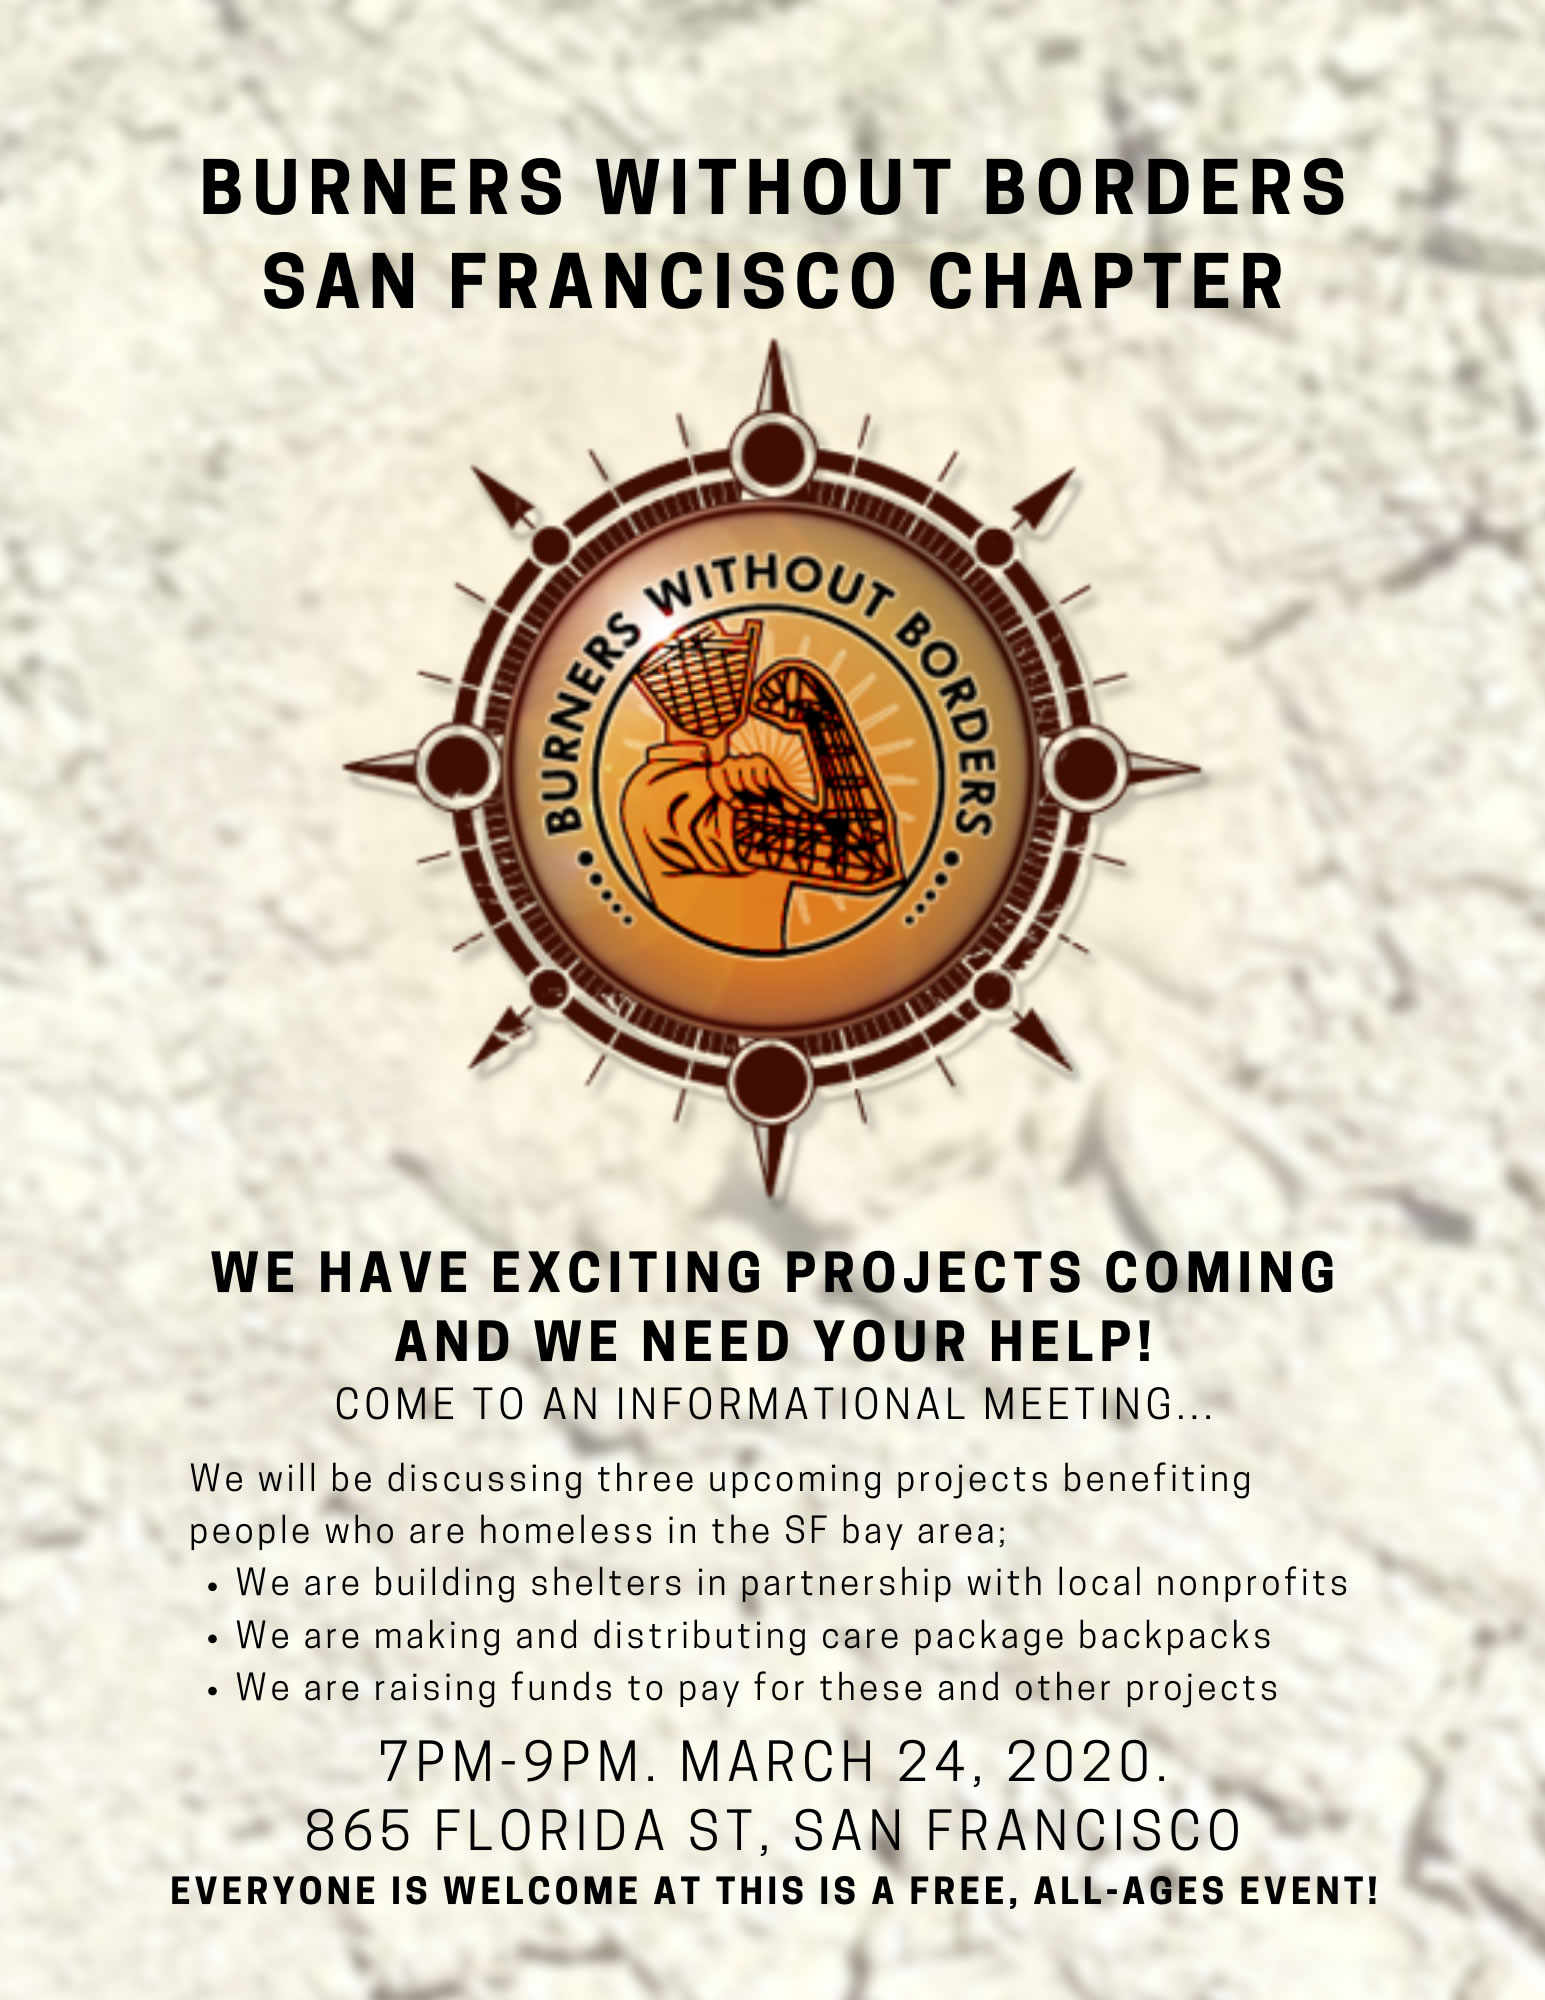 BWB/SF Informational Meeting Flyer